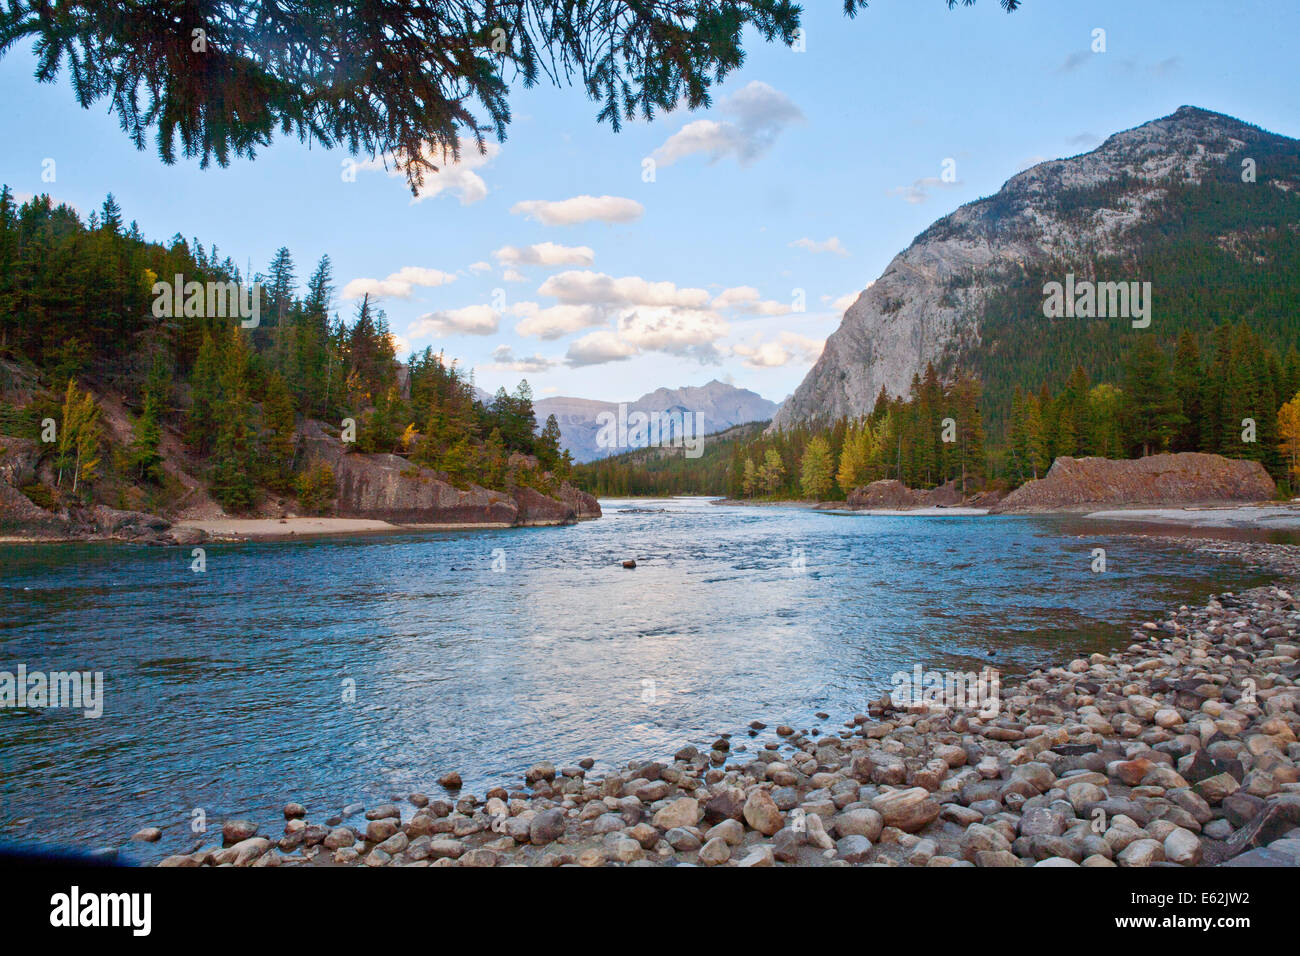 Bow River flows near Banff in Banff National Park Alberta, Canada Stock Photo